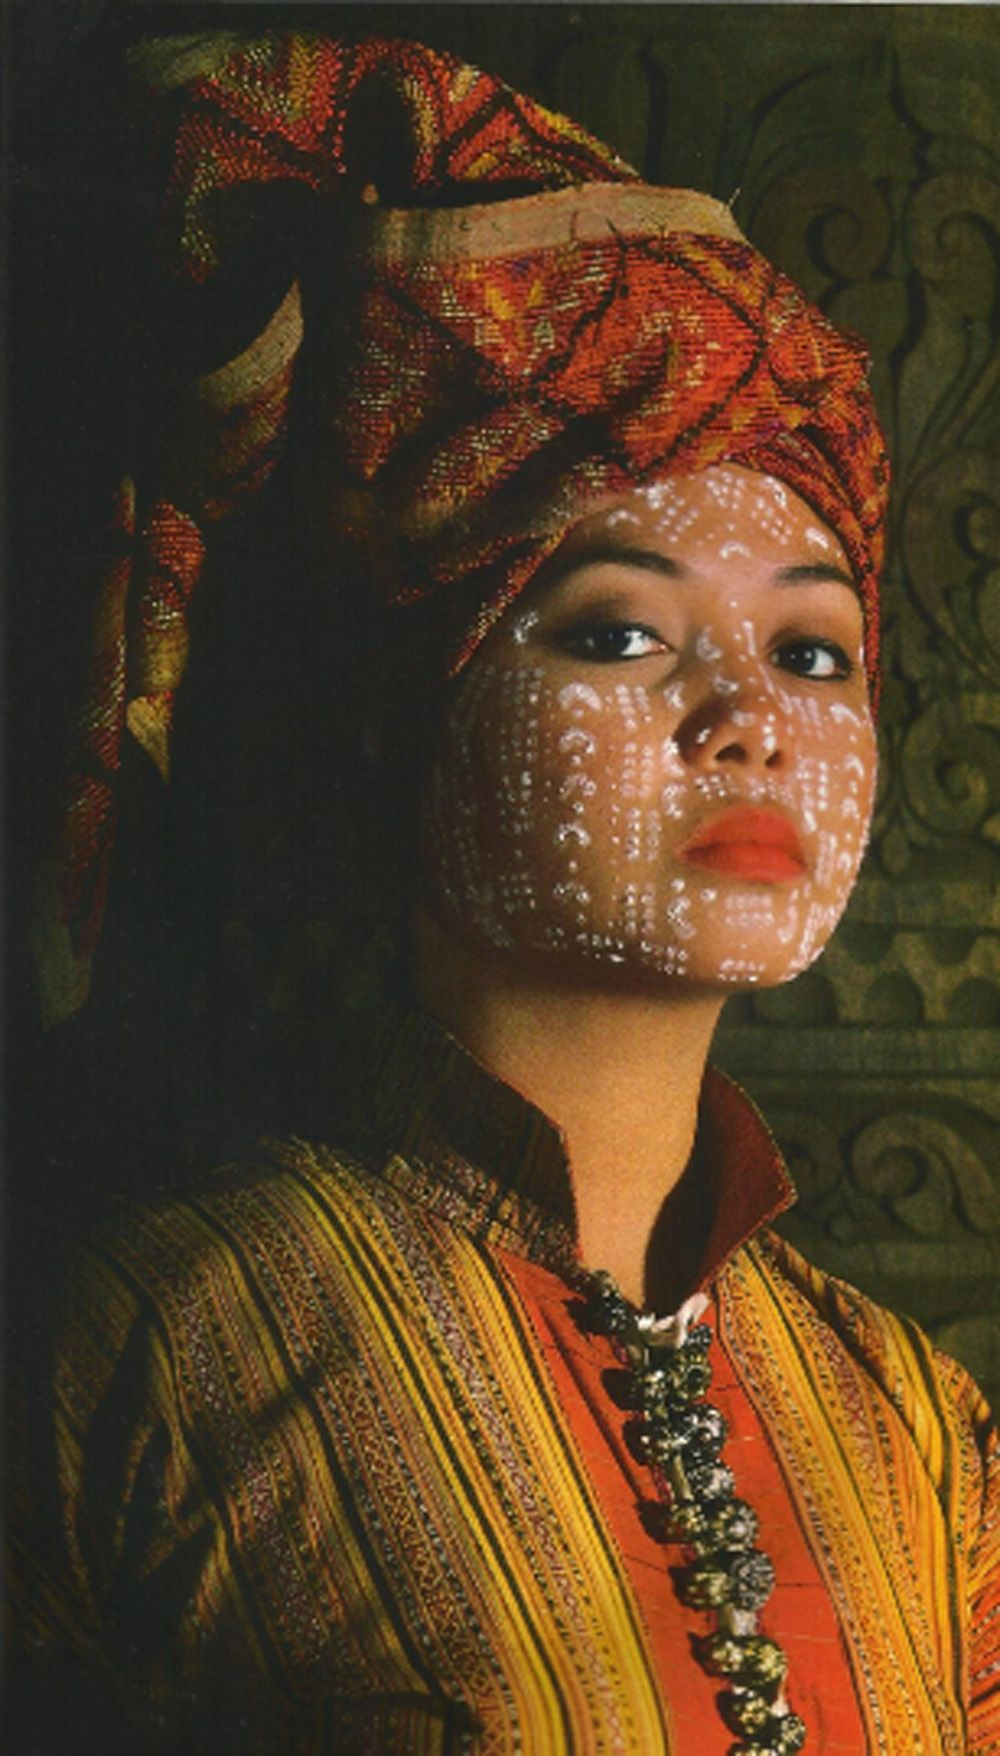 Asia | Yakan woman with traditional painted face, Mindanao, Philippines | National Geographic archives.